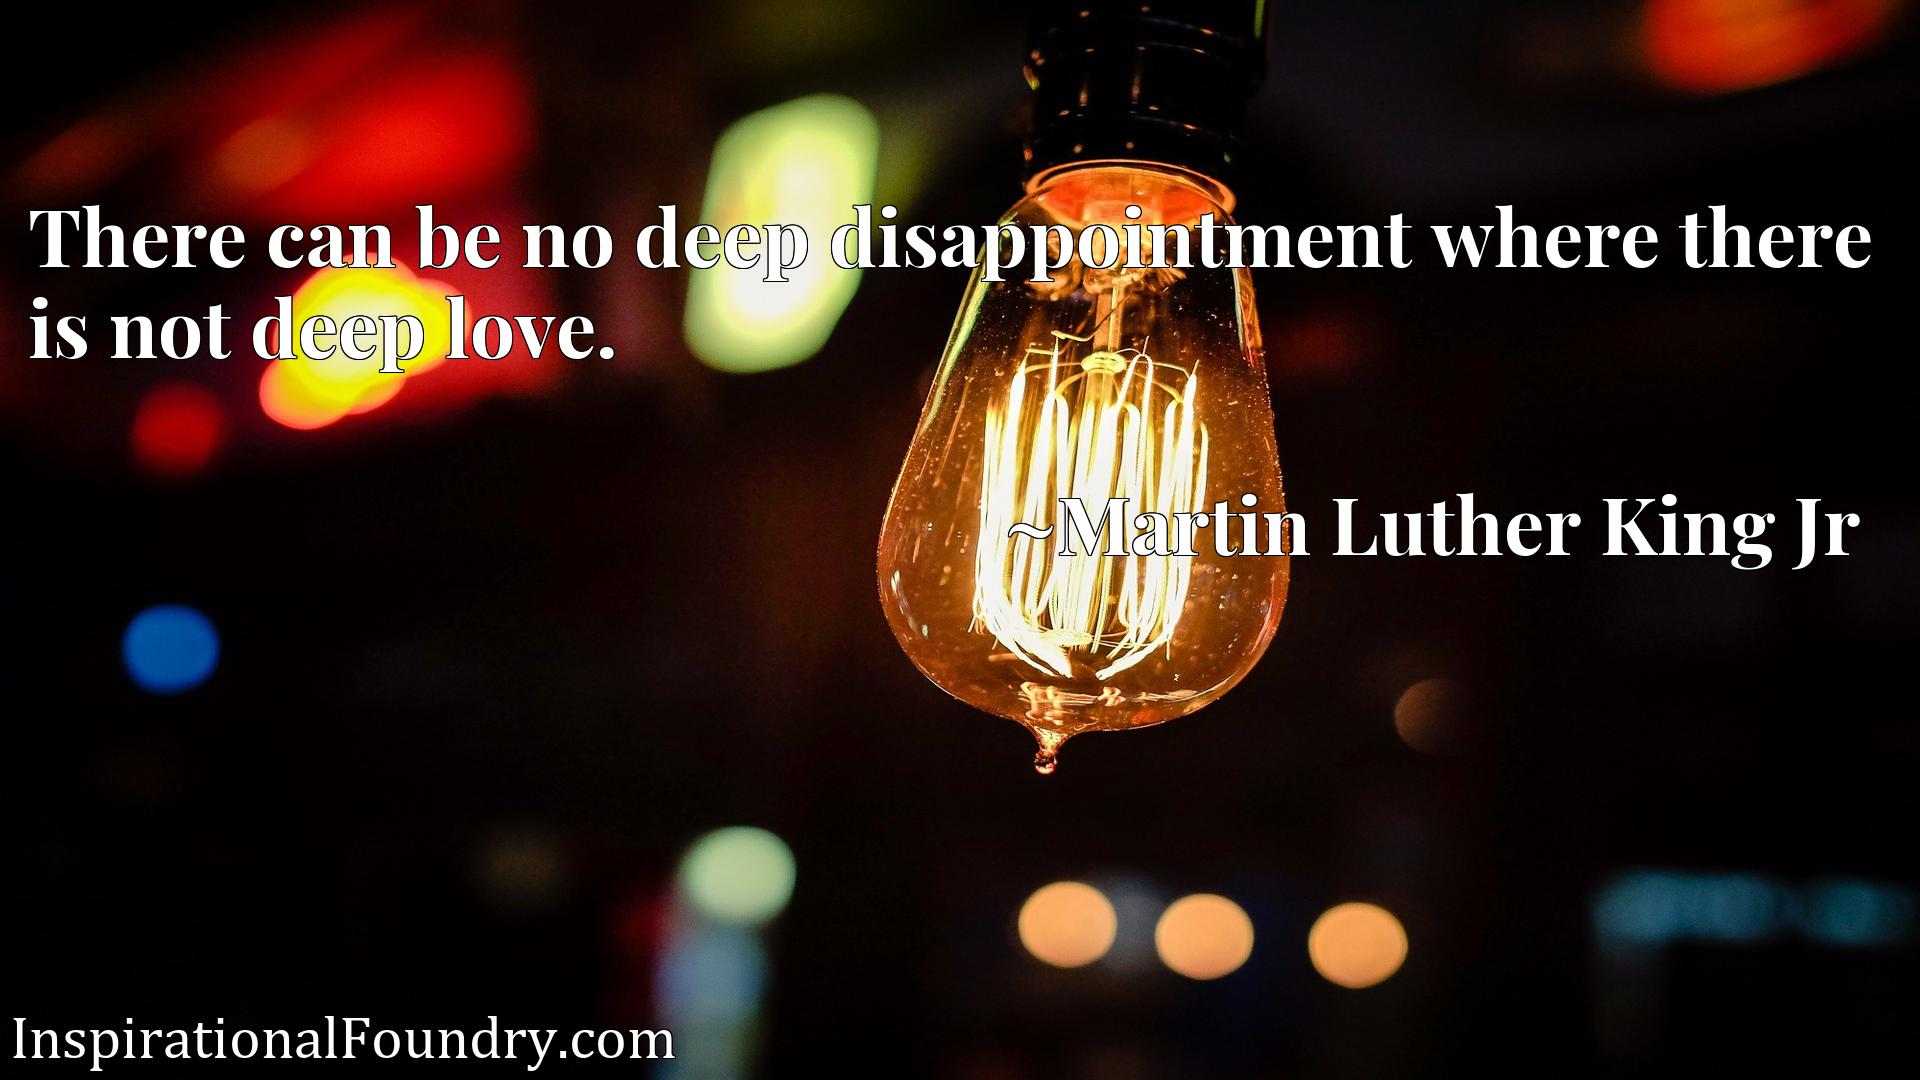 There can be no deep disappointment where there is not deep love.